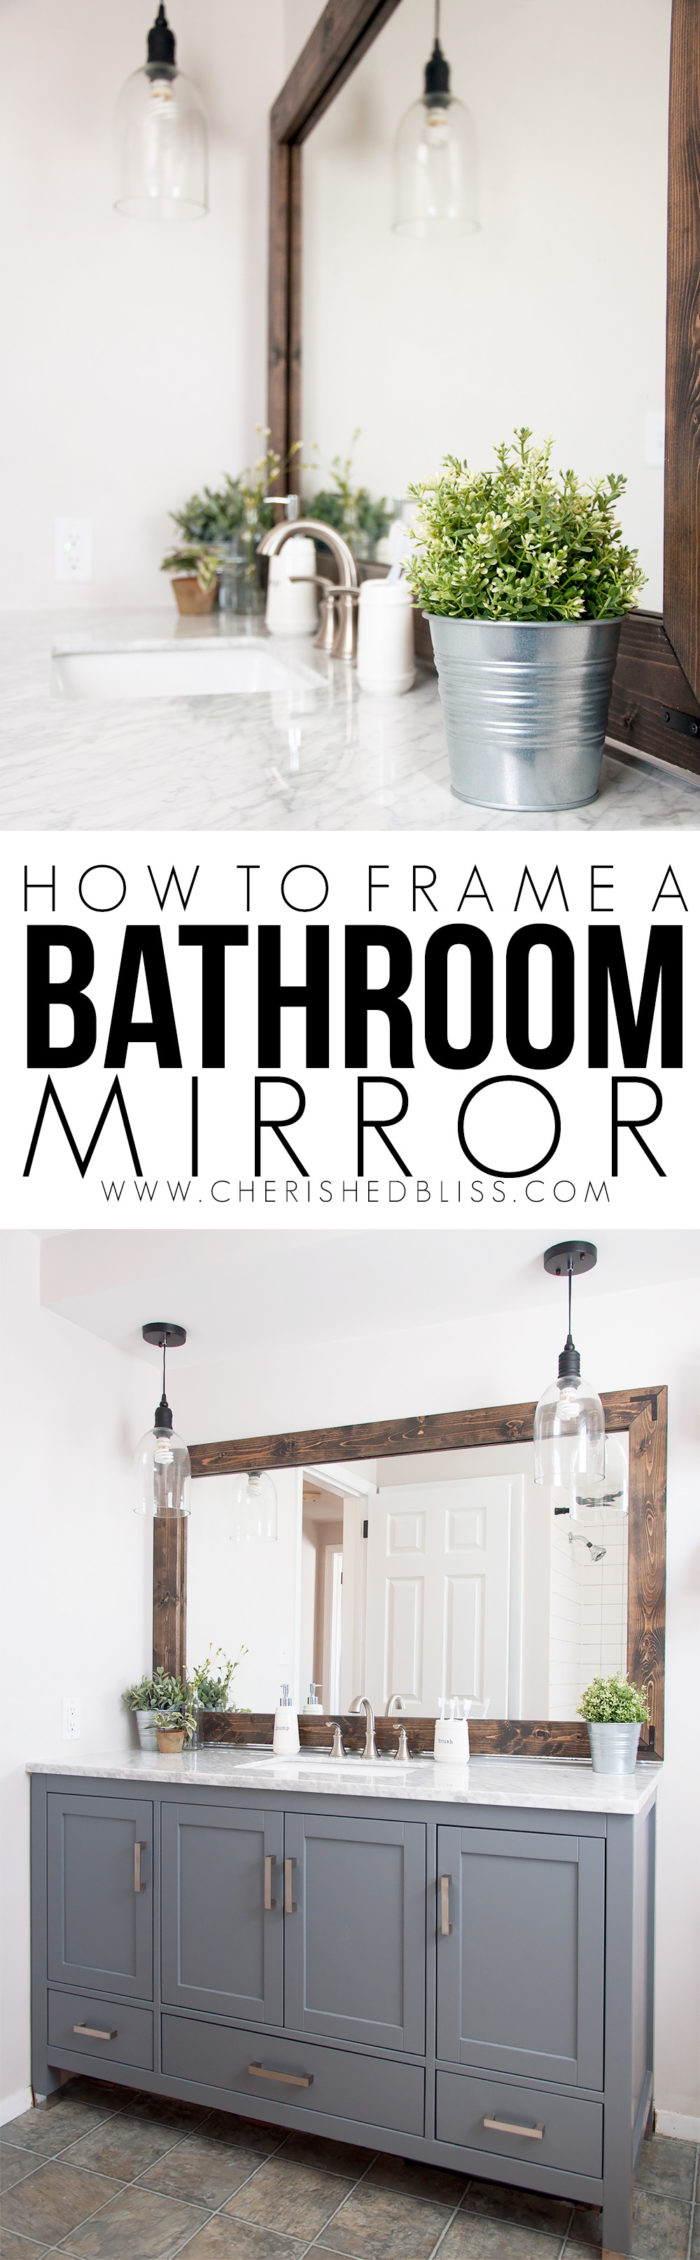 Improve The Value Of Your Bathroom With This Easy Tutorial On How To Frame A